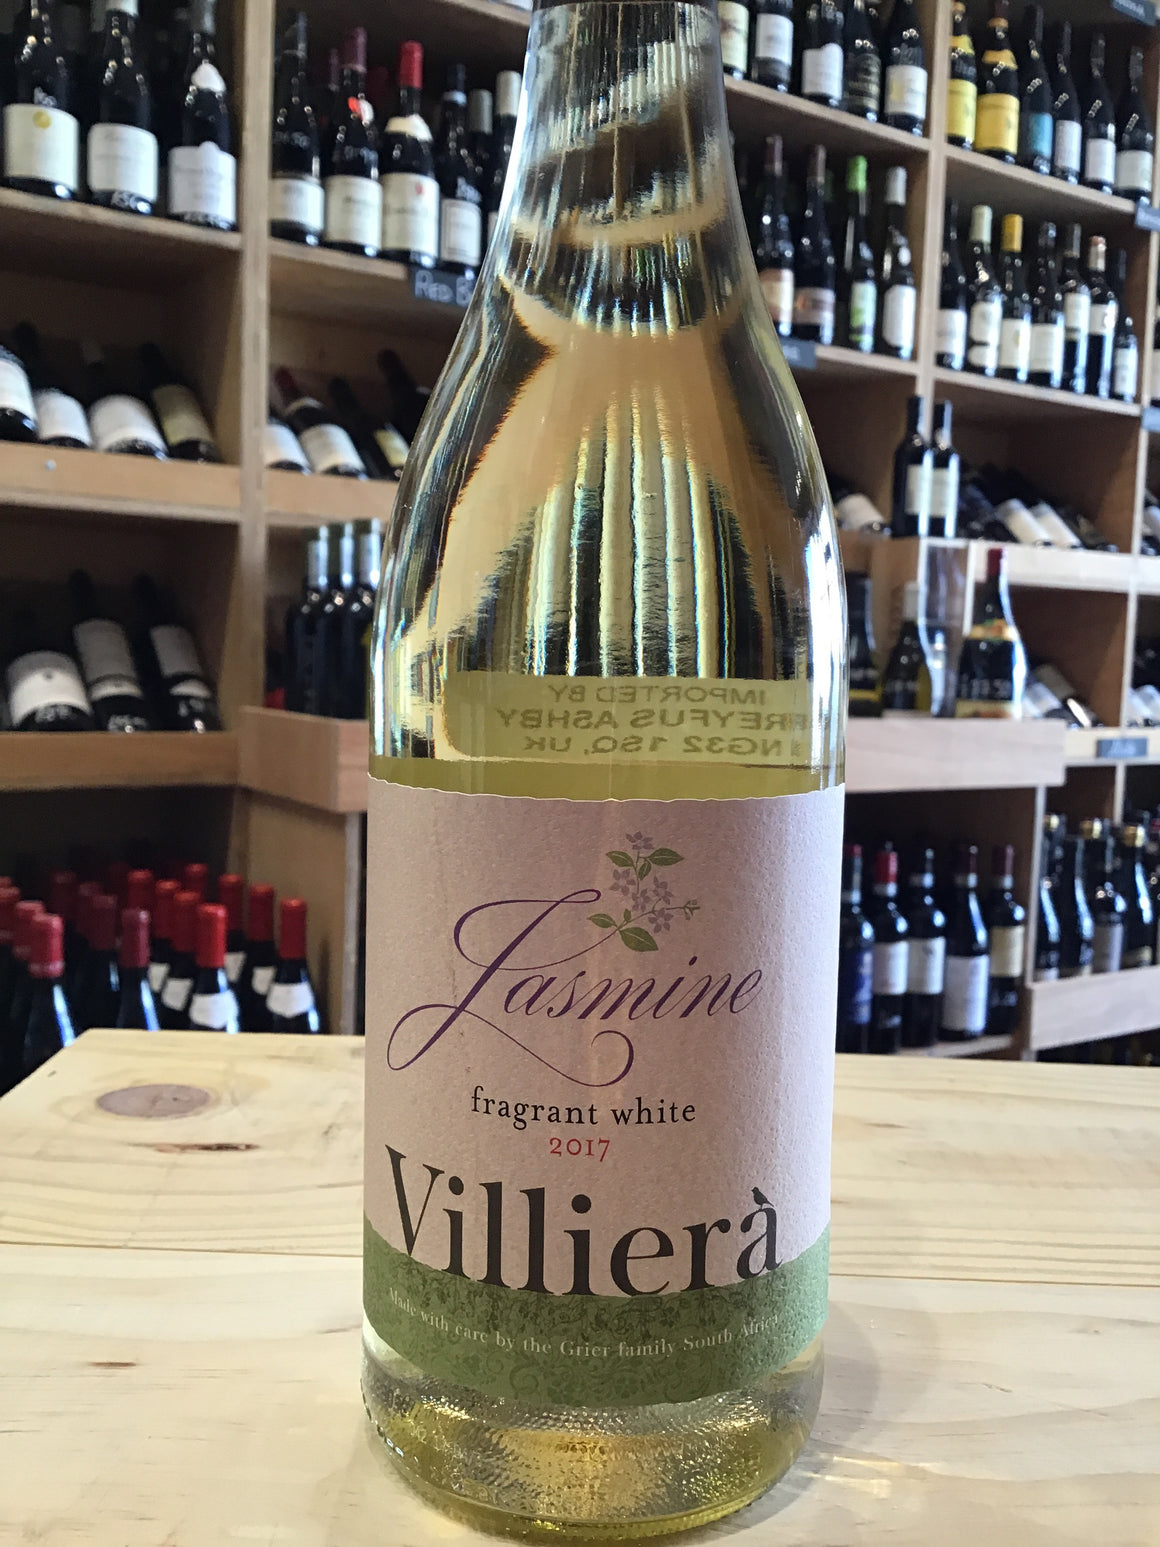 Villiera Jasmine Fragrant White 2017 - Butlers Wine Cellar Brighton